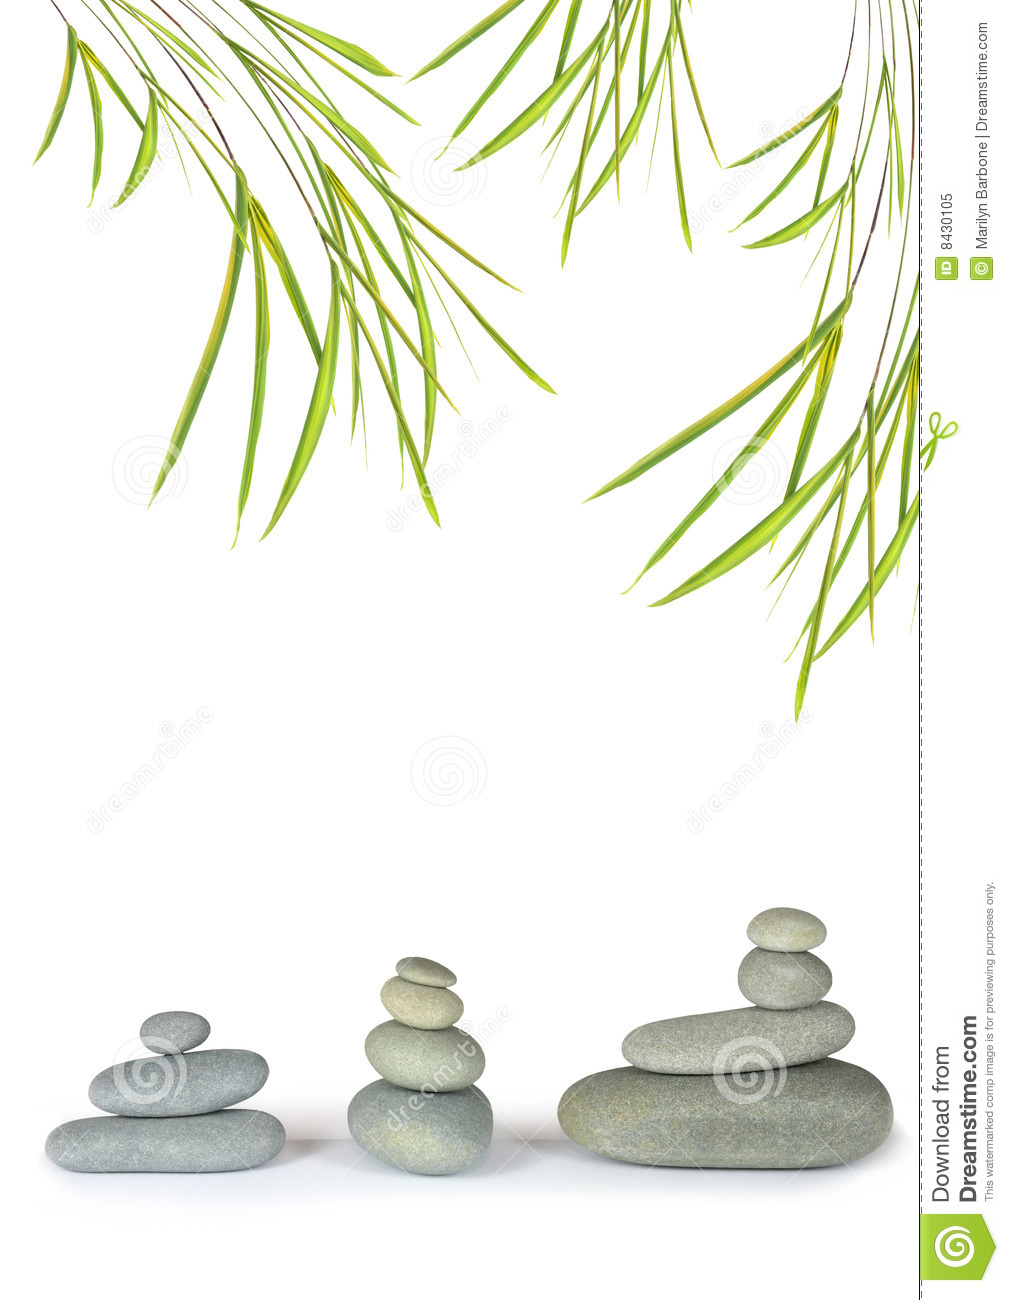 Zen spa stone abstract royalty free stock photo image for Abstract salon of the arts